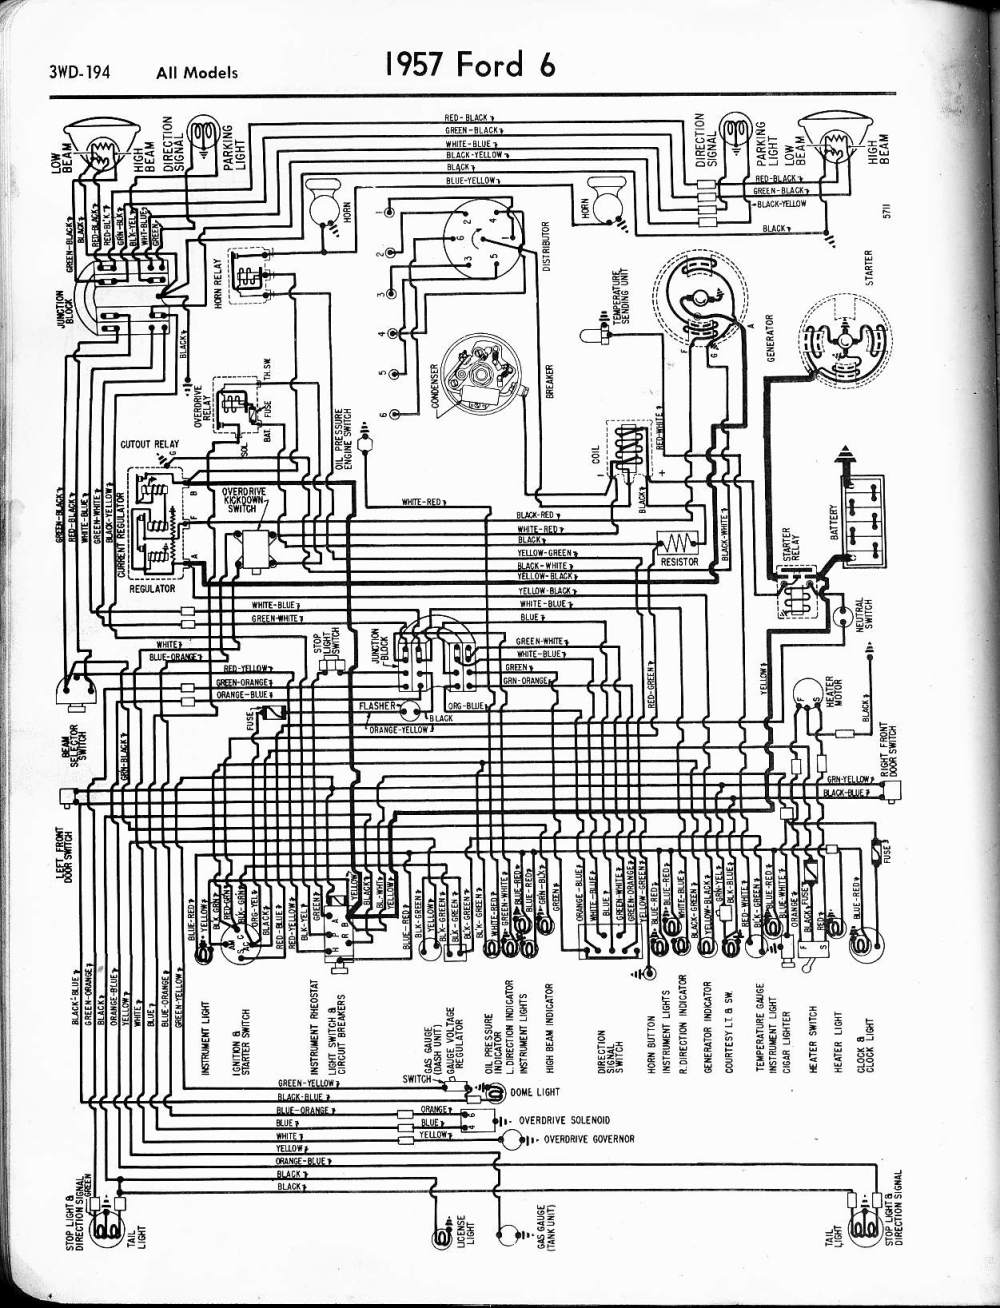 medium resolution of 1947 ford coupe wiring diagram wiring diagram1957 ford wiring harness wiring diagram57 65 ford wiring diagrams